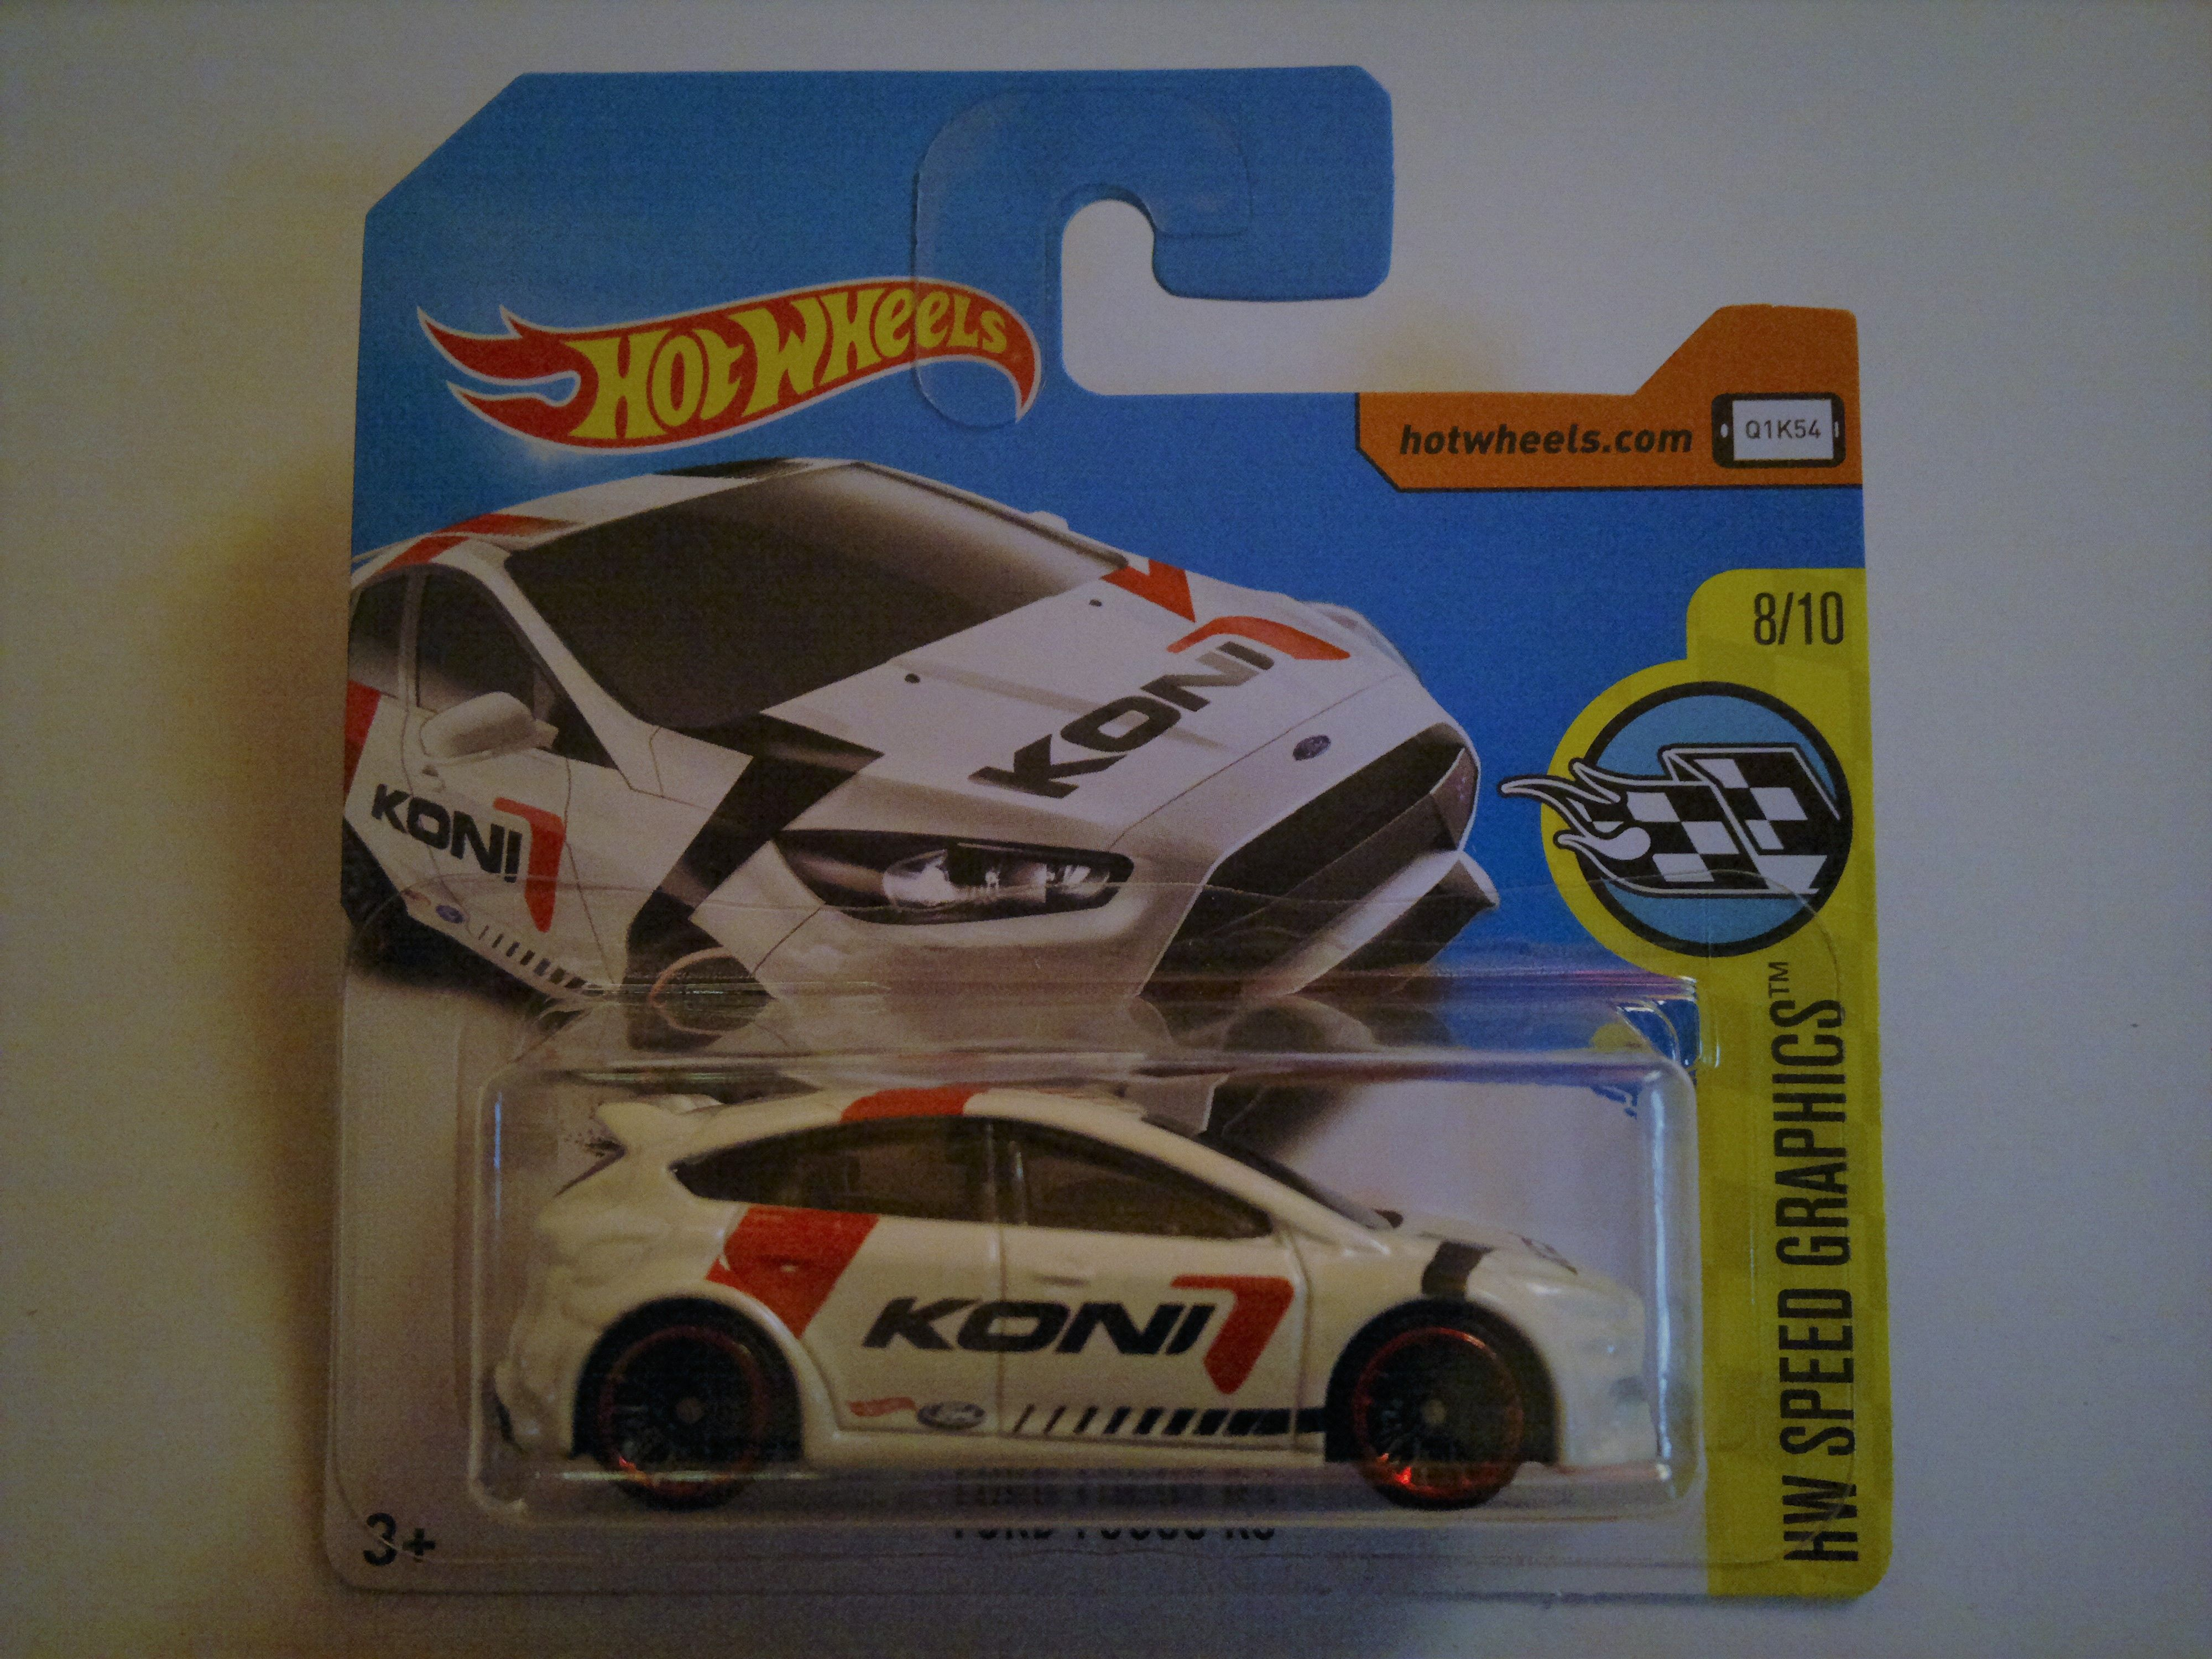 2017 ford focus rs hot wheels hot wheels collection 164 2017 ford focus rs hot wheels publicscrutiny Images